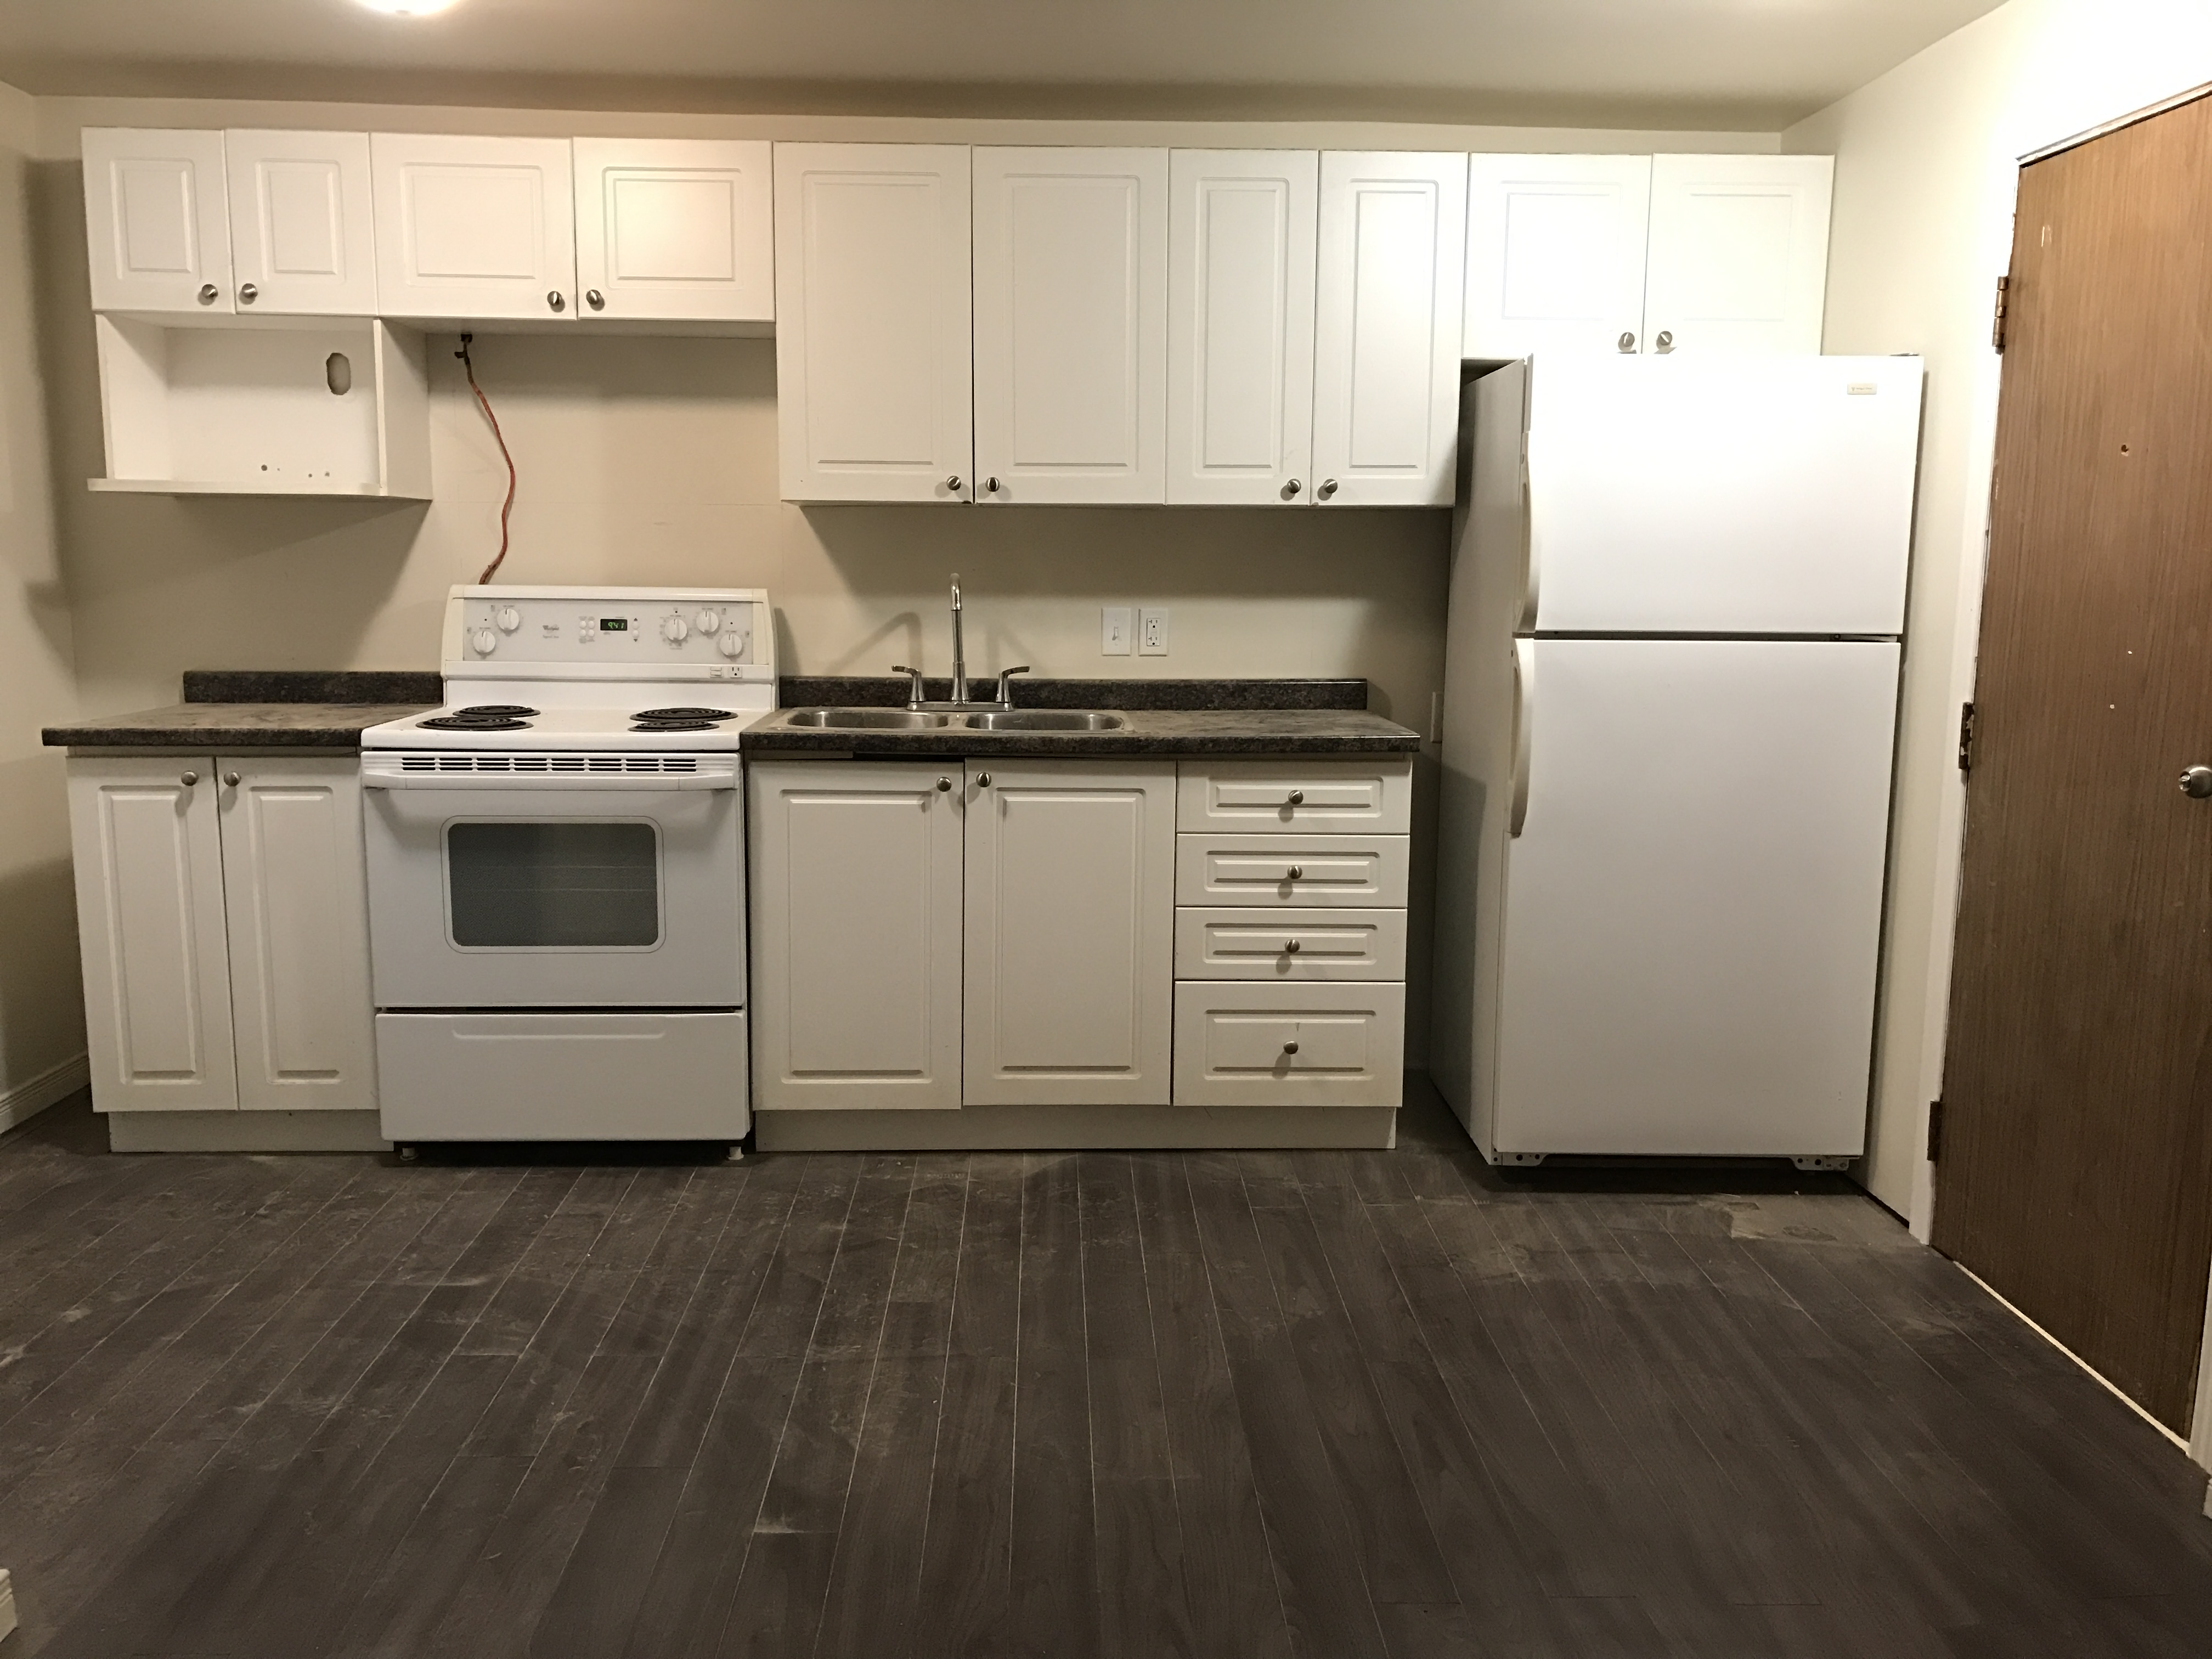 CHARMING 1 BEDROOM UPPER IN DOWNTOWN ESSEX